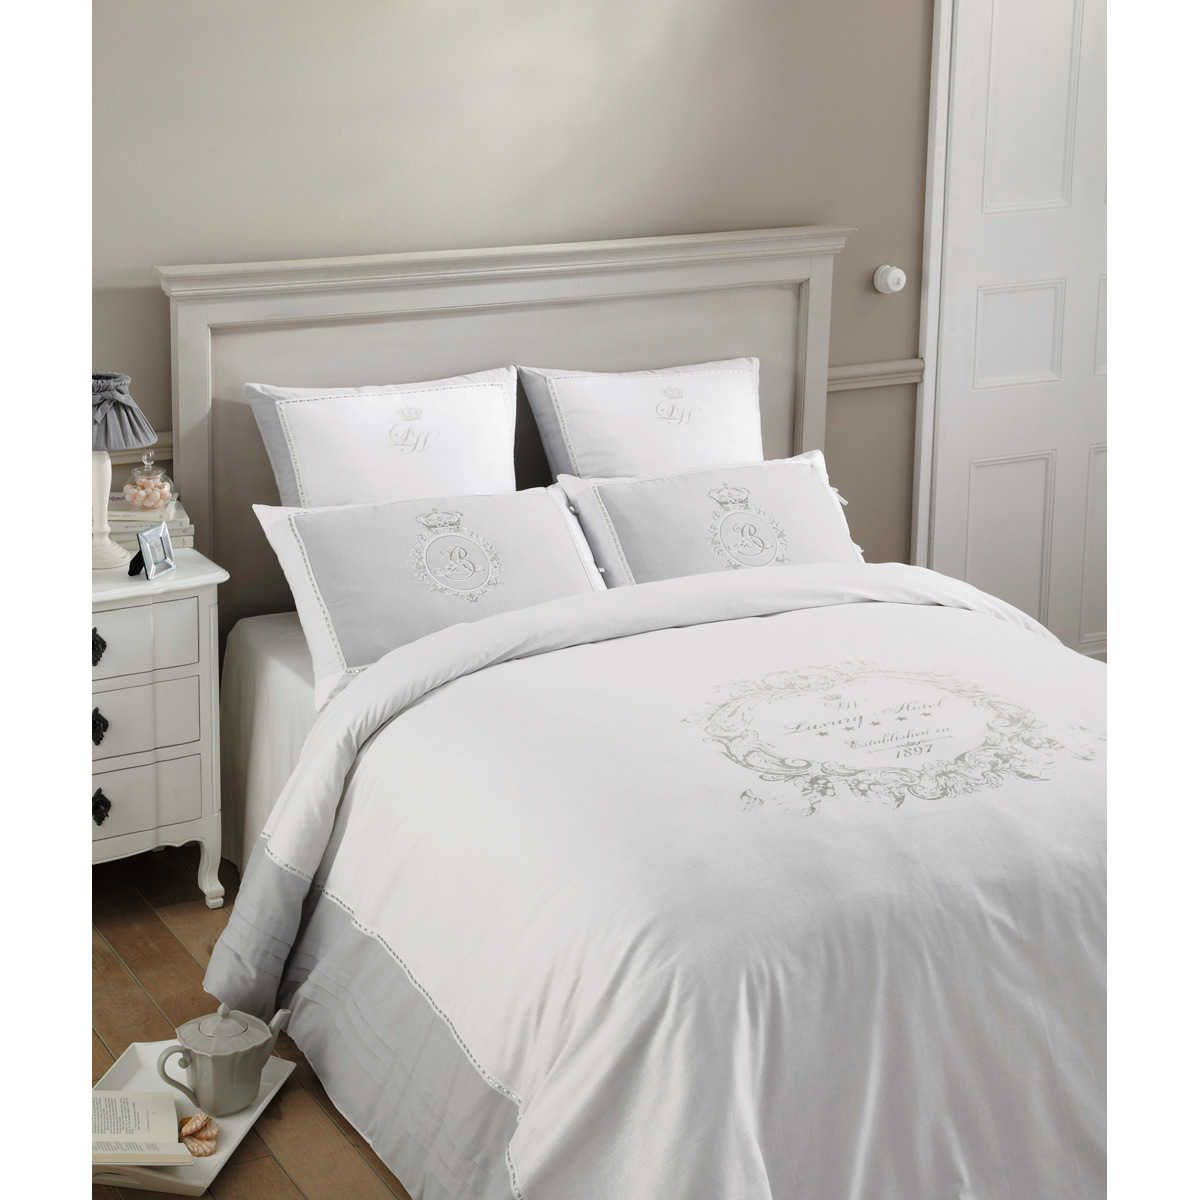 parure de lit 220 x 240 cm en coton blanche luxury maisons du monde next flat ideas. Black Bedroom Furniture Sets. Home Design Ideas